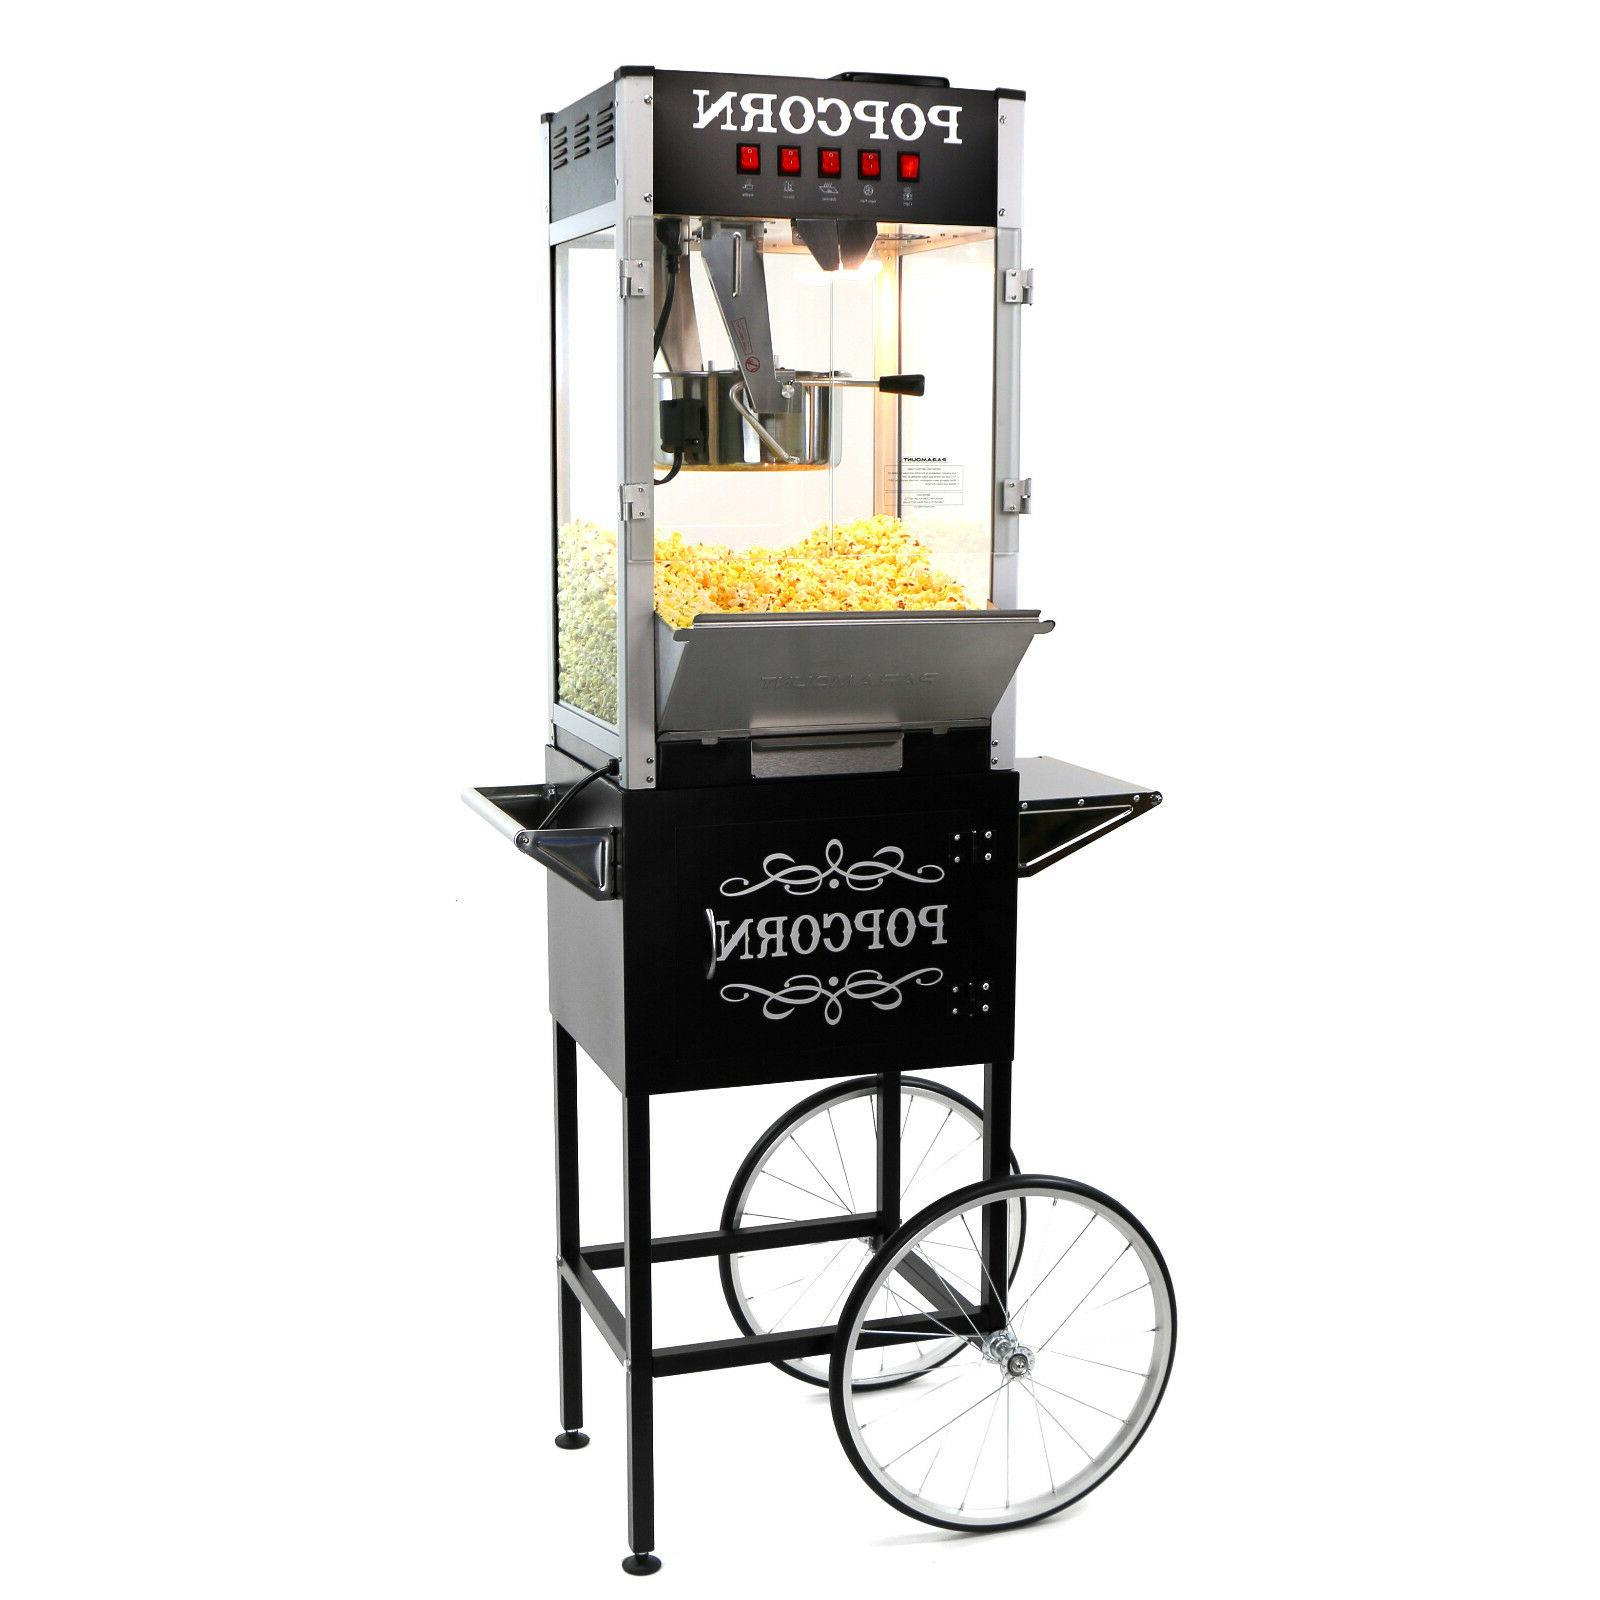 16oz commercial popcorn maker machine and cart